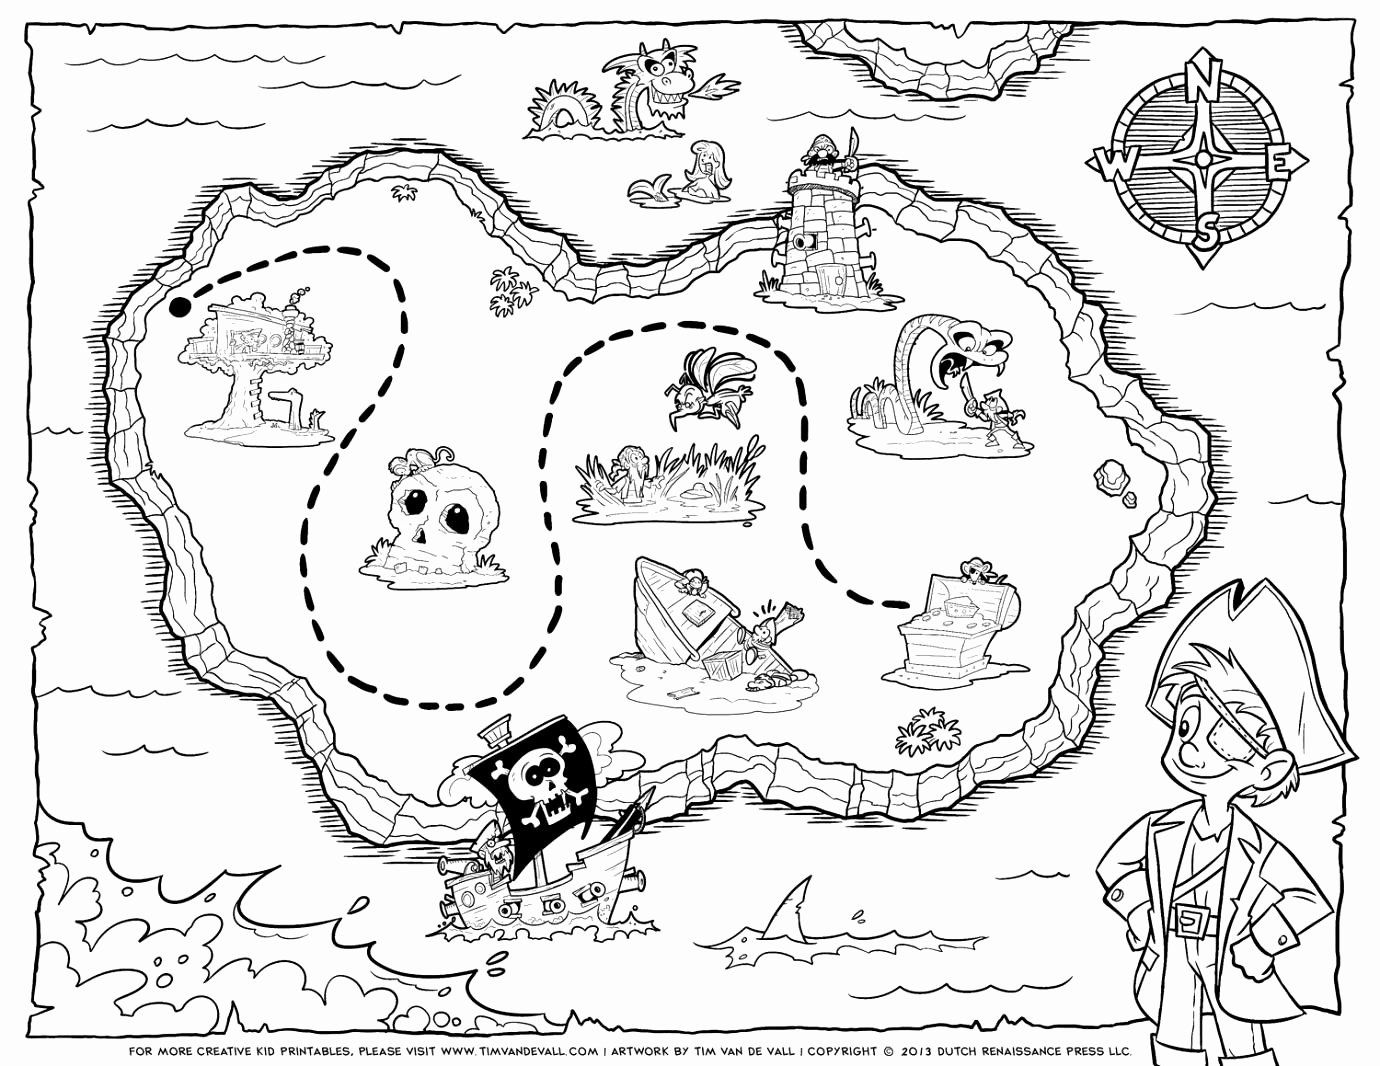 6th Grade Coloring Sheets Beautiful Neighborhood Map Coloring Page Coloring Home Pirate Treasure Maps Pirate Maps Pirate Coloring Pages [ 1066 x 1380 Pixel ]